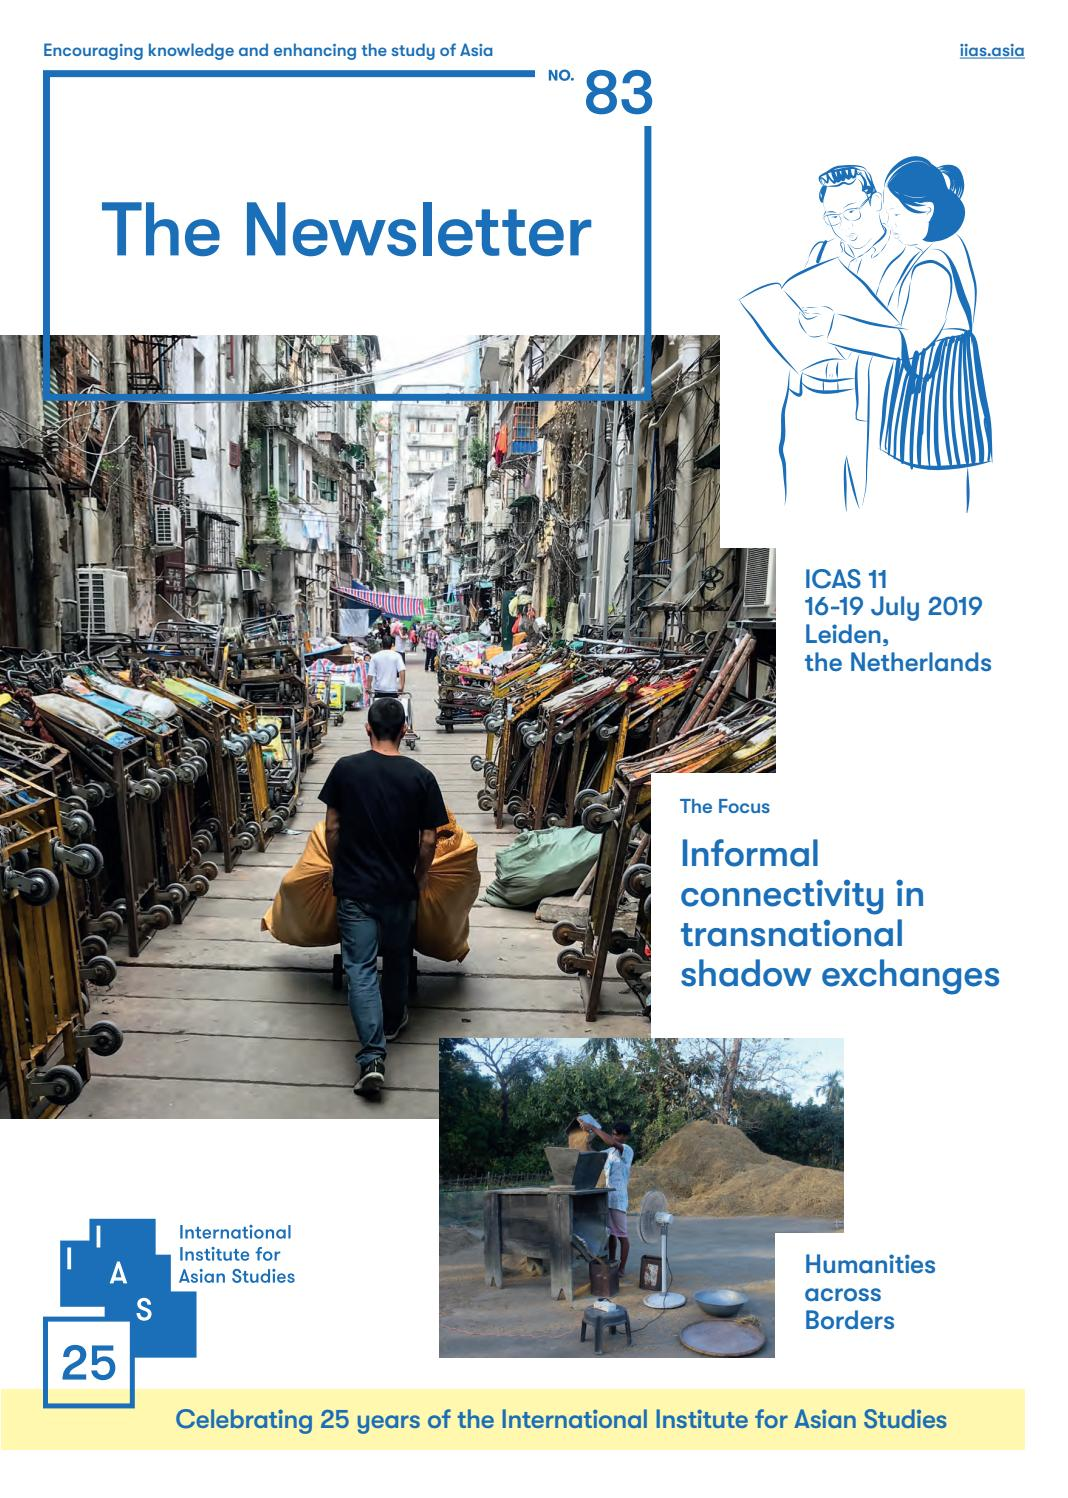 a594a91a17c The Newsletter 83 Summer 2019 by International Institute for Asian ...